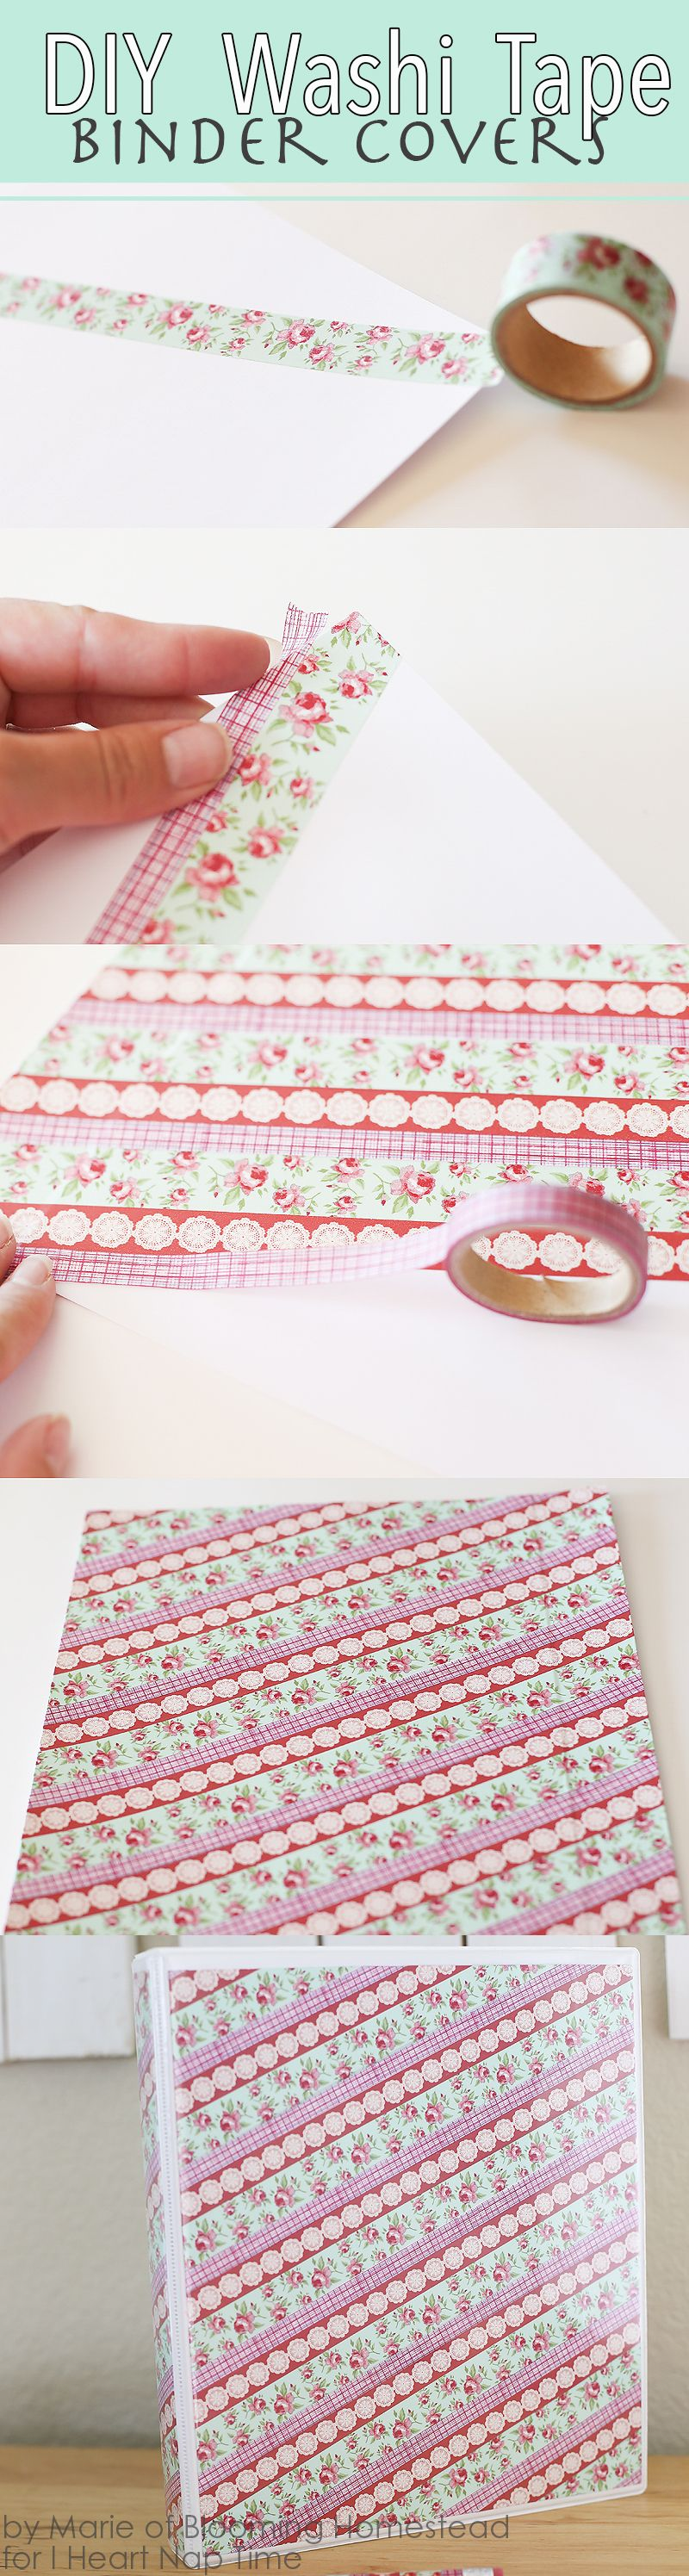 how to make a diy binder cover